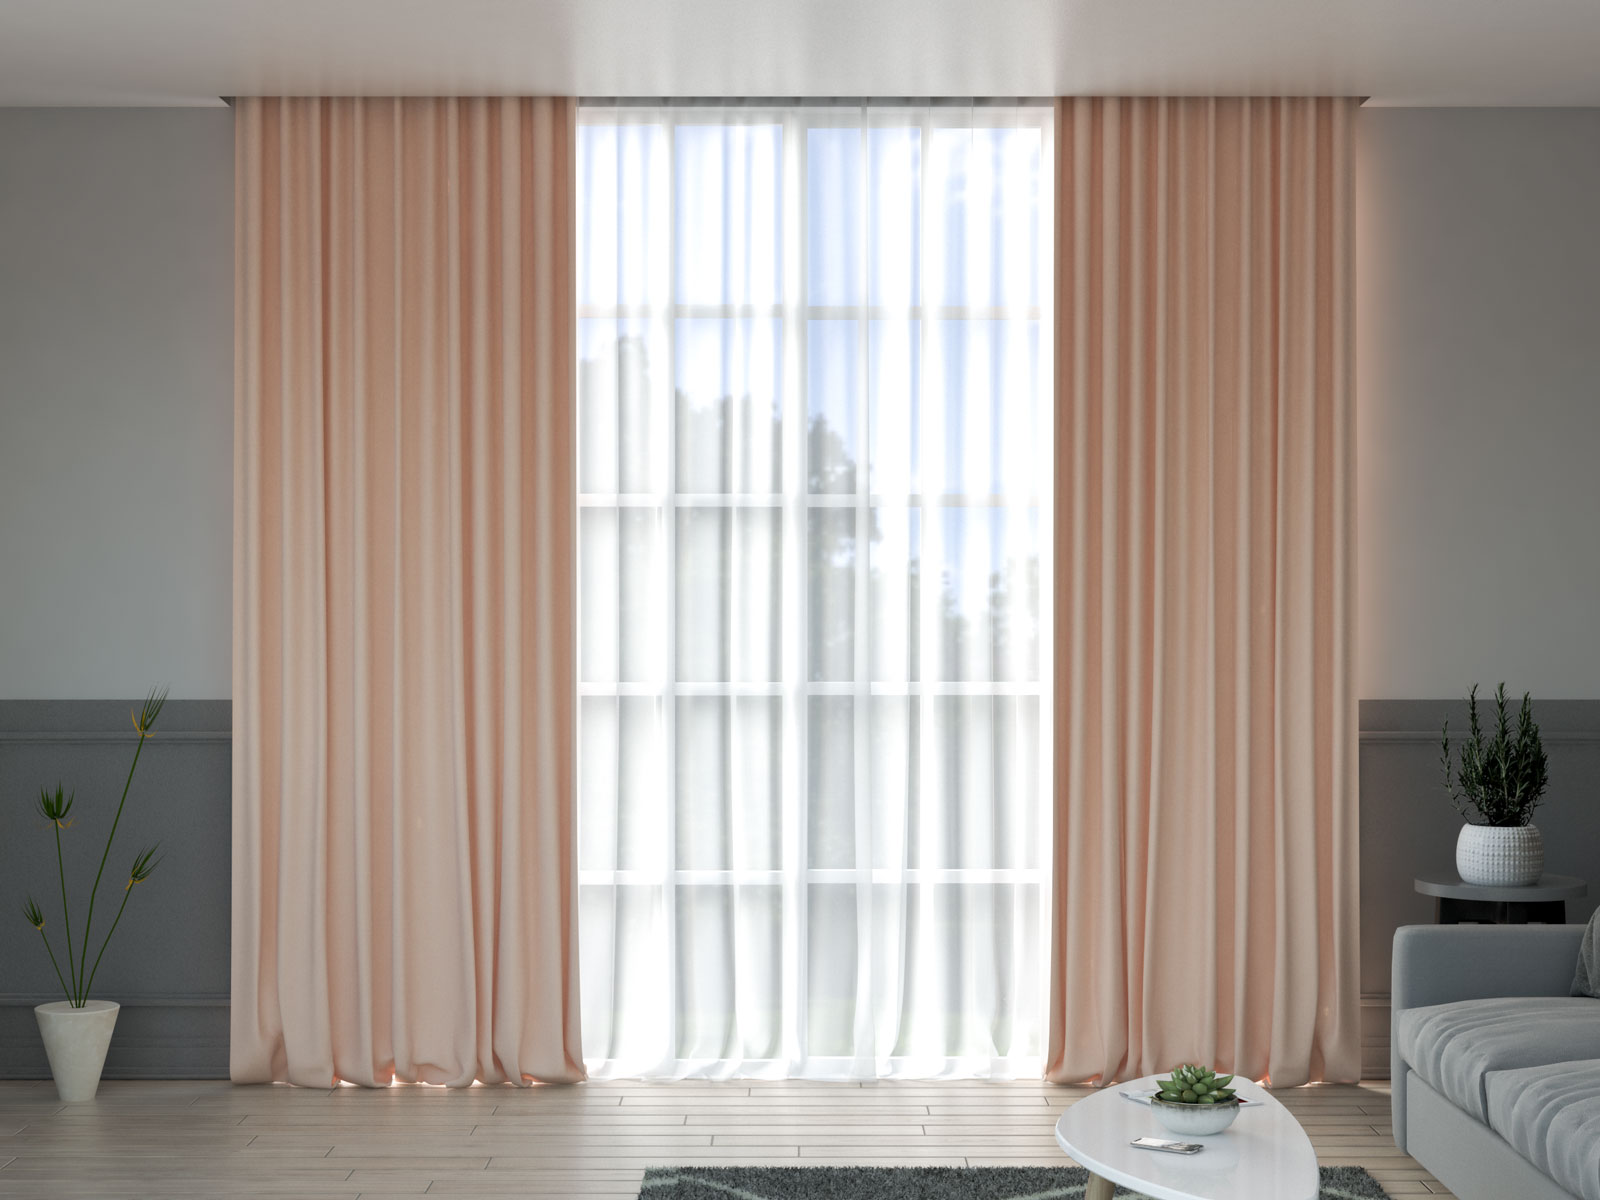 Blush curtains with gray walls